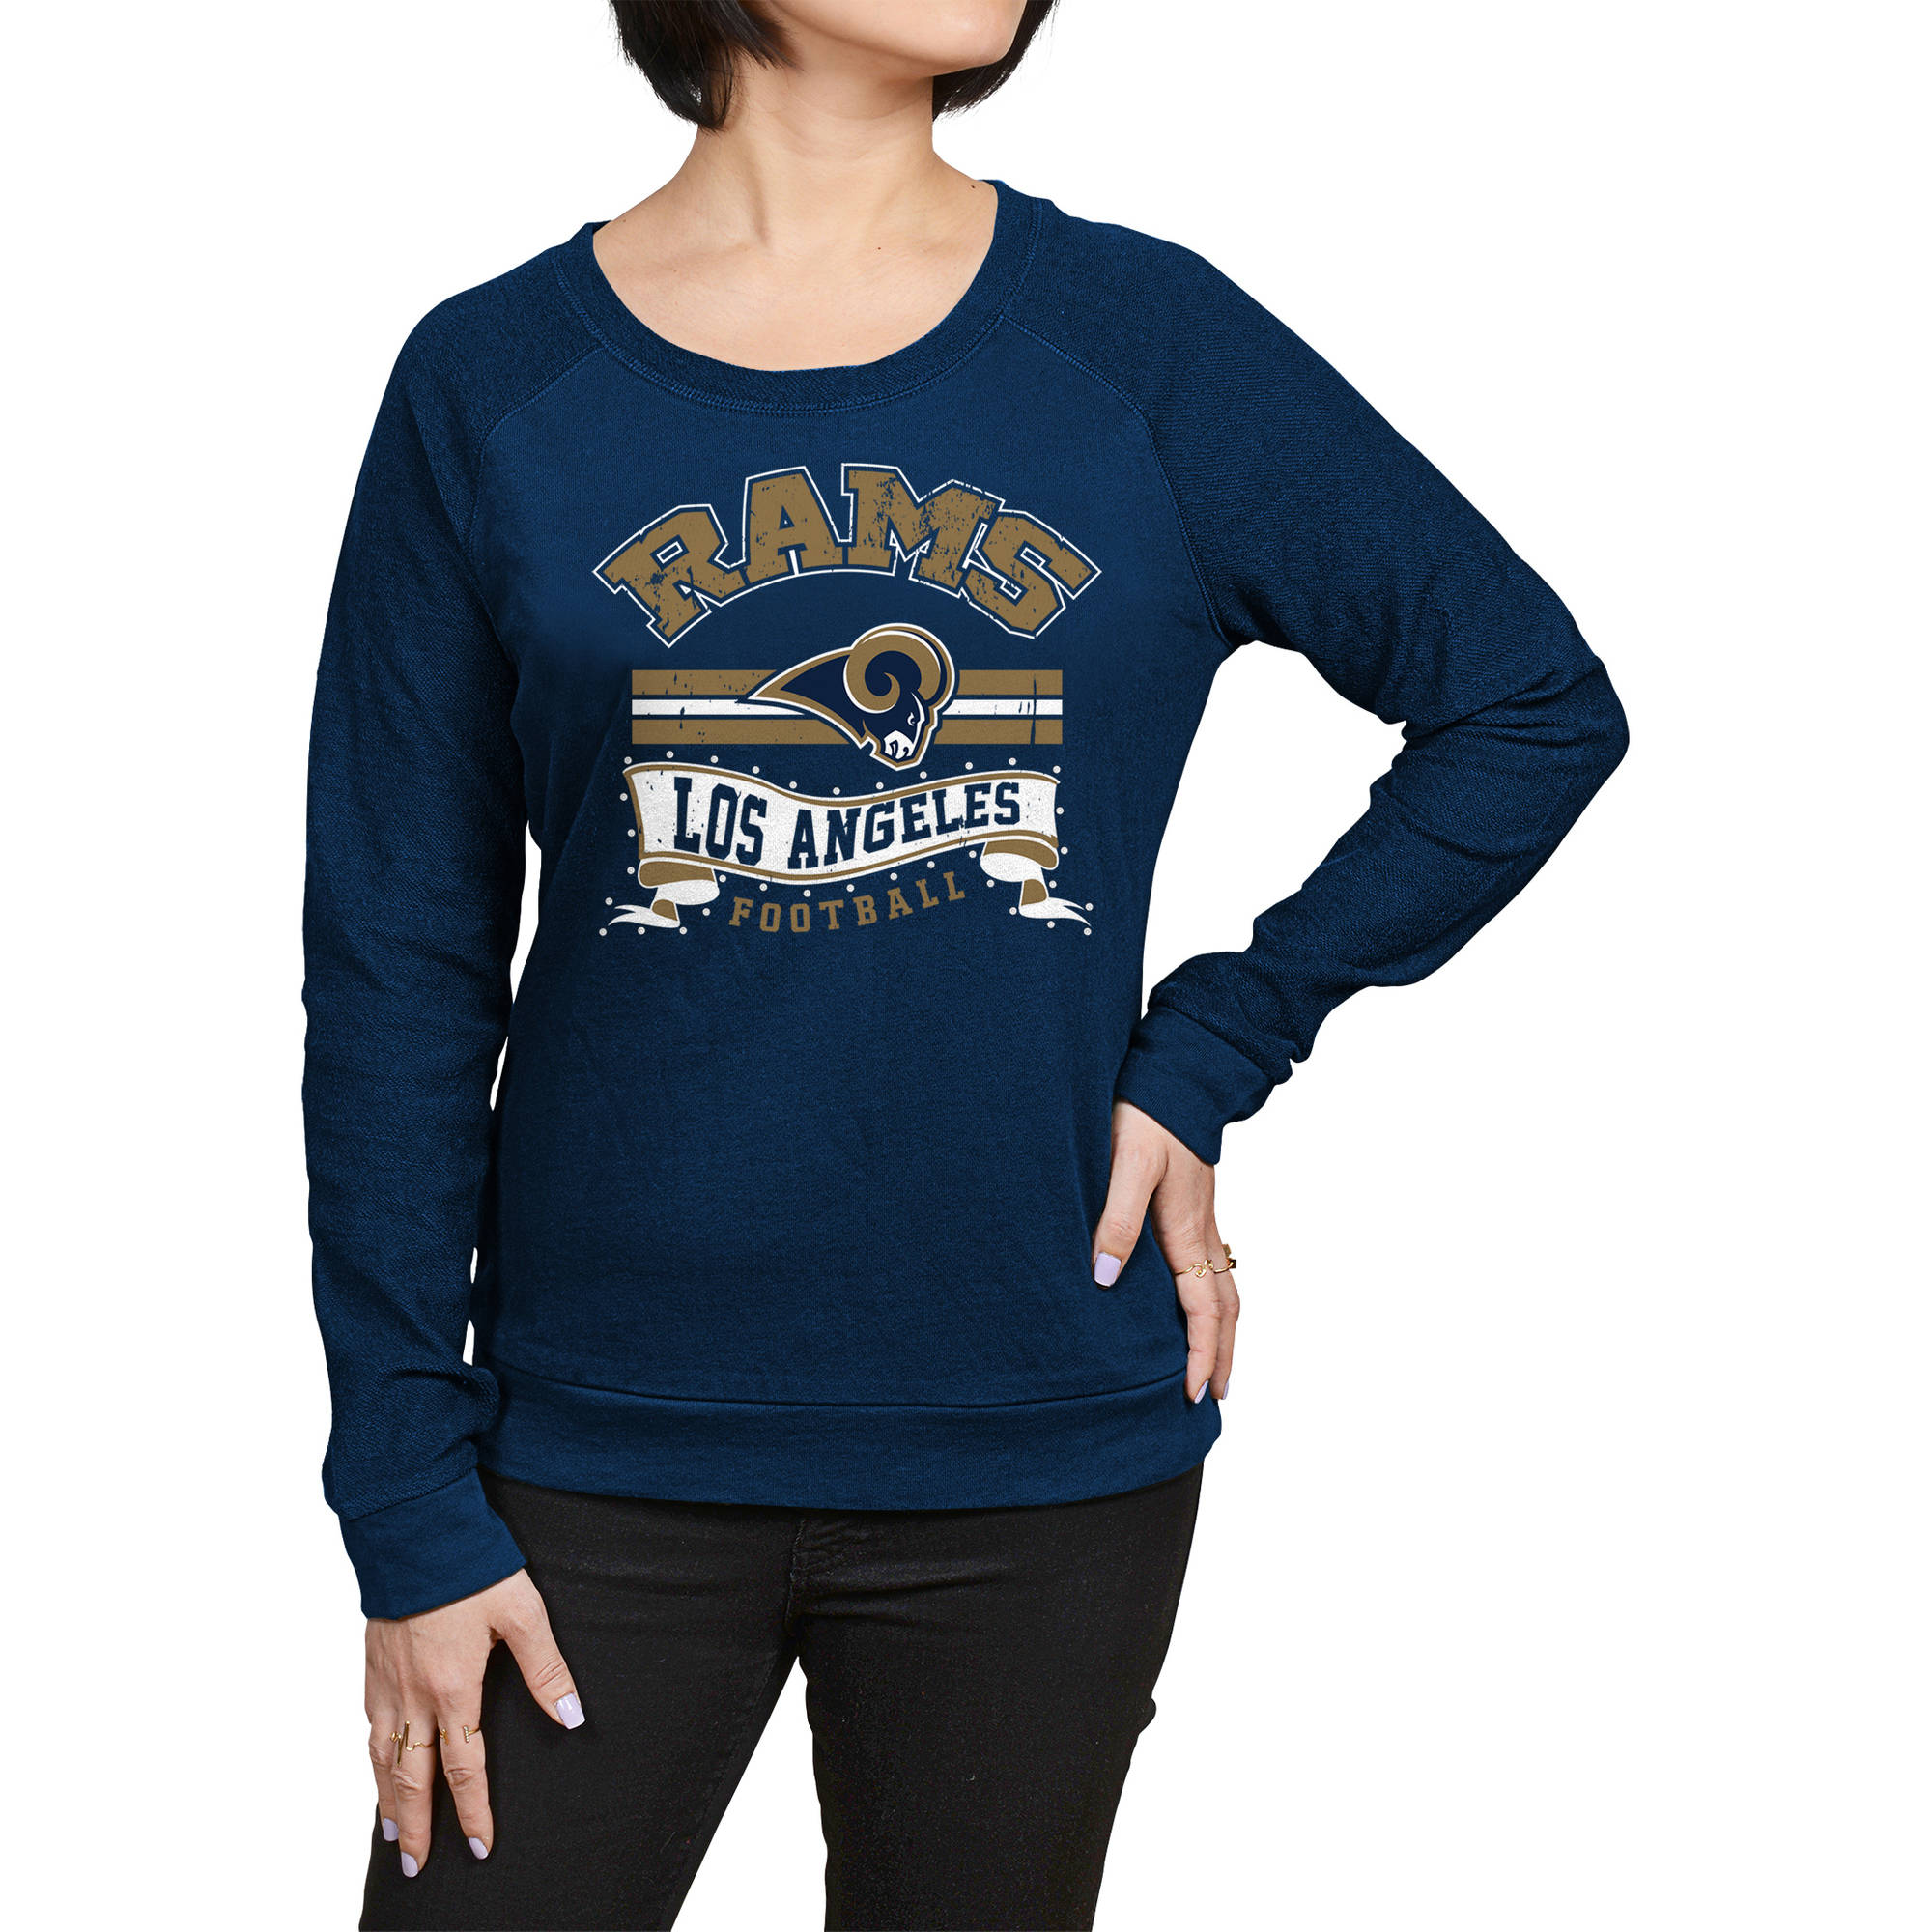 NFL Los Angeles Rams Juniors Fleece Top